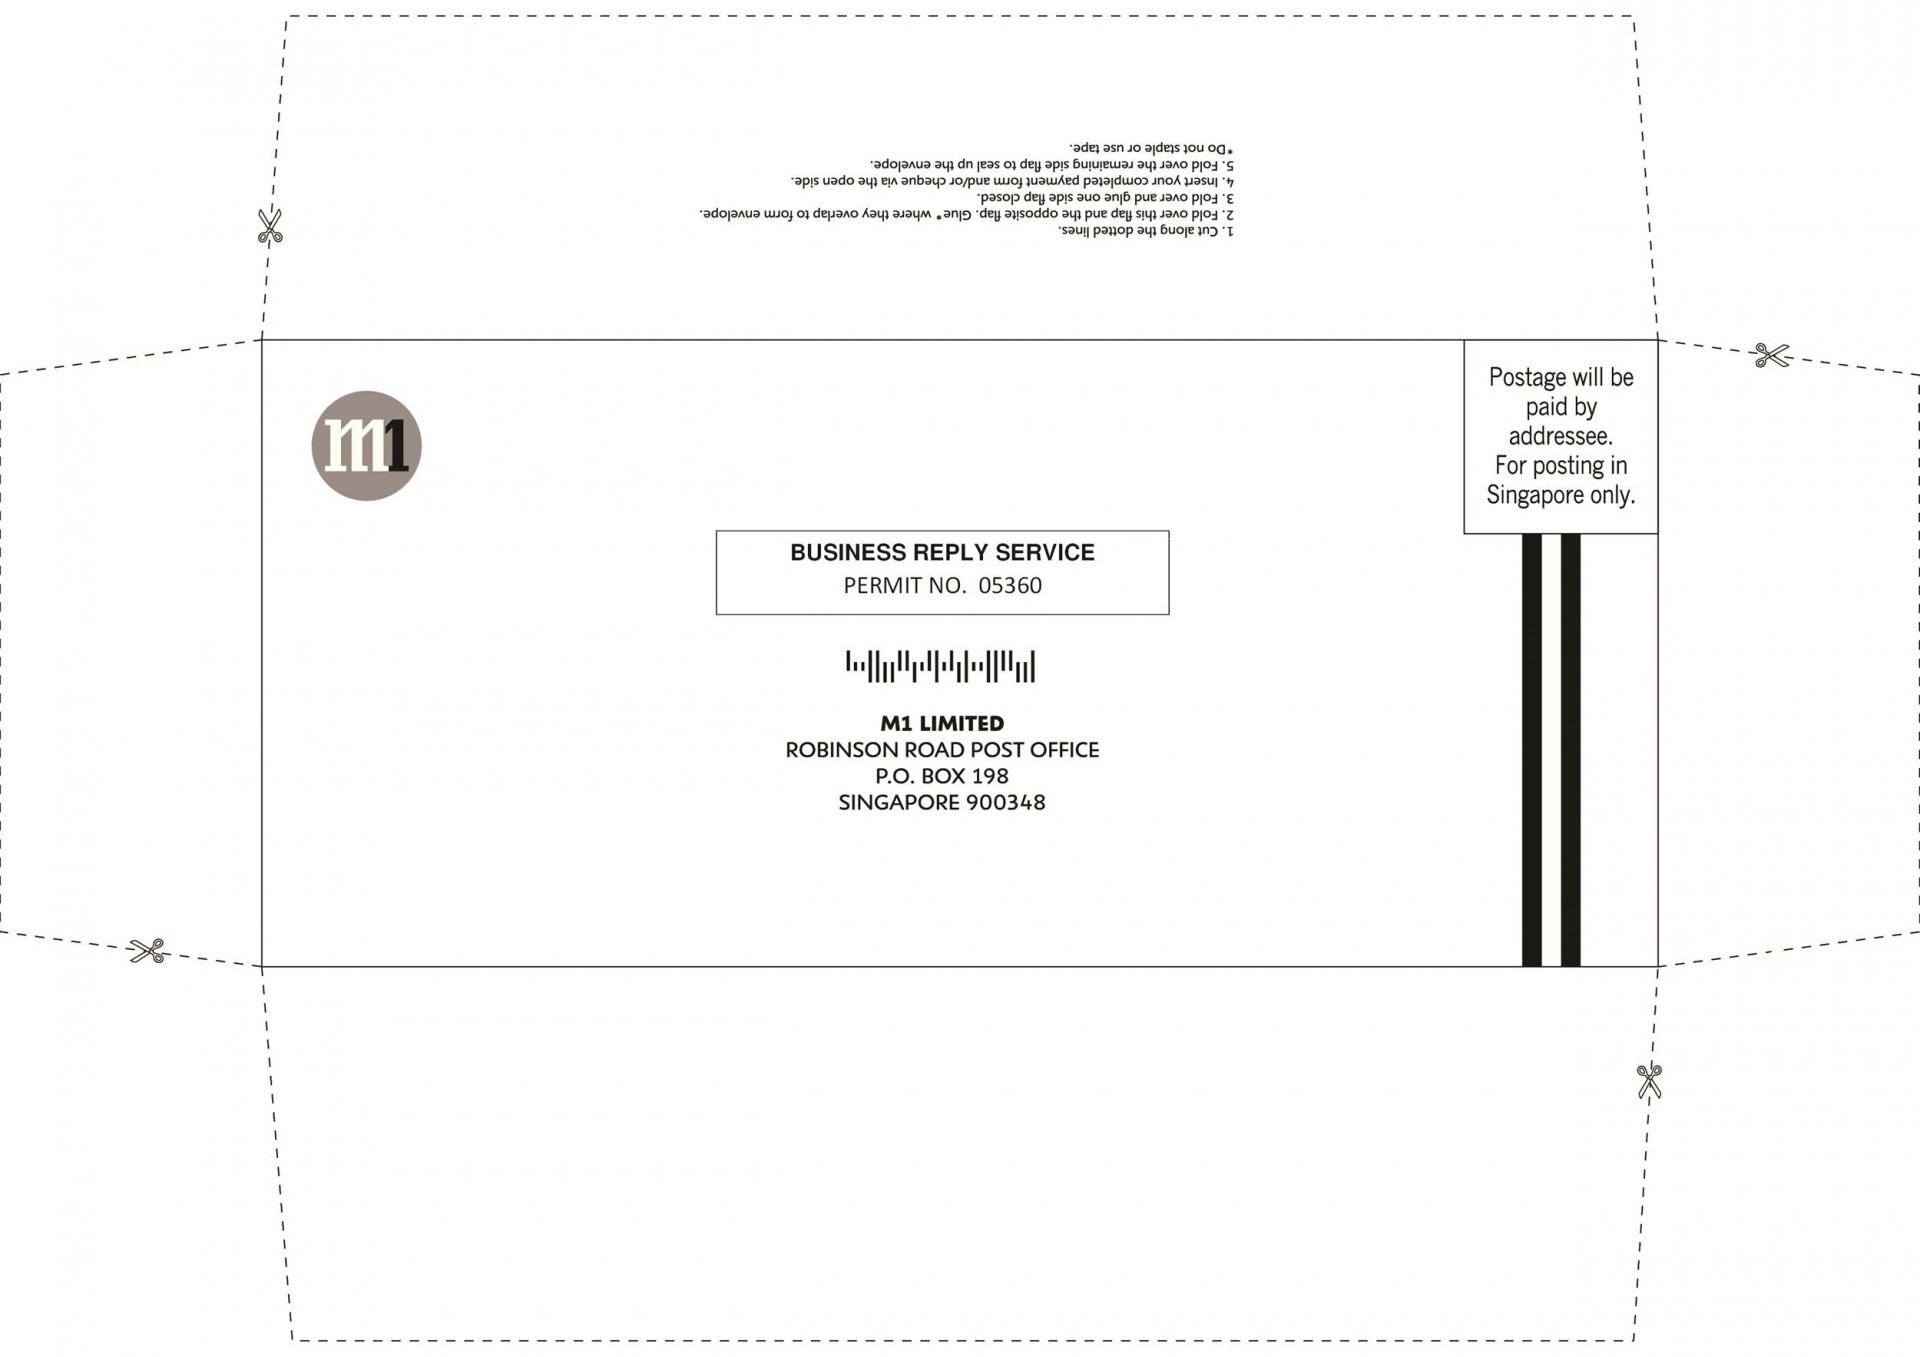 004 Excellent 5x7 Envelope Template Word Photo  Microsoft Free1920